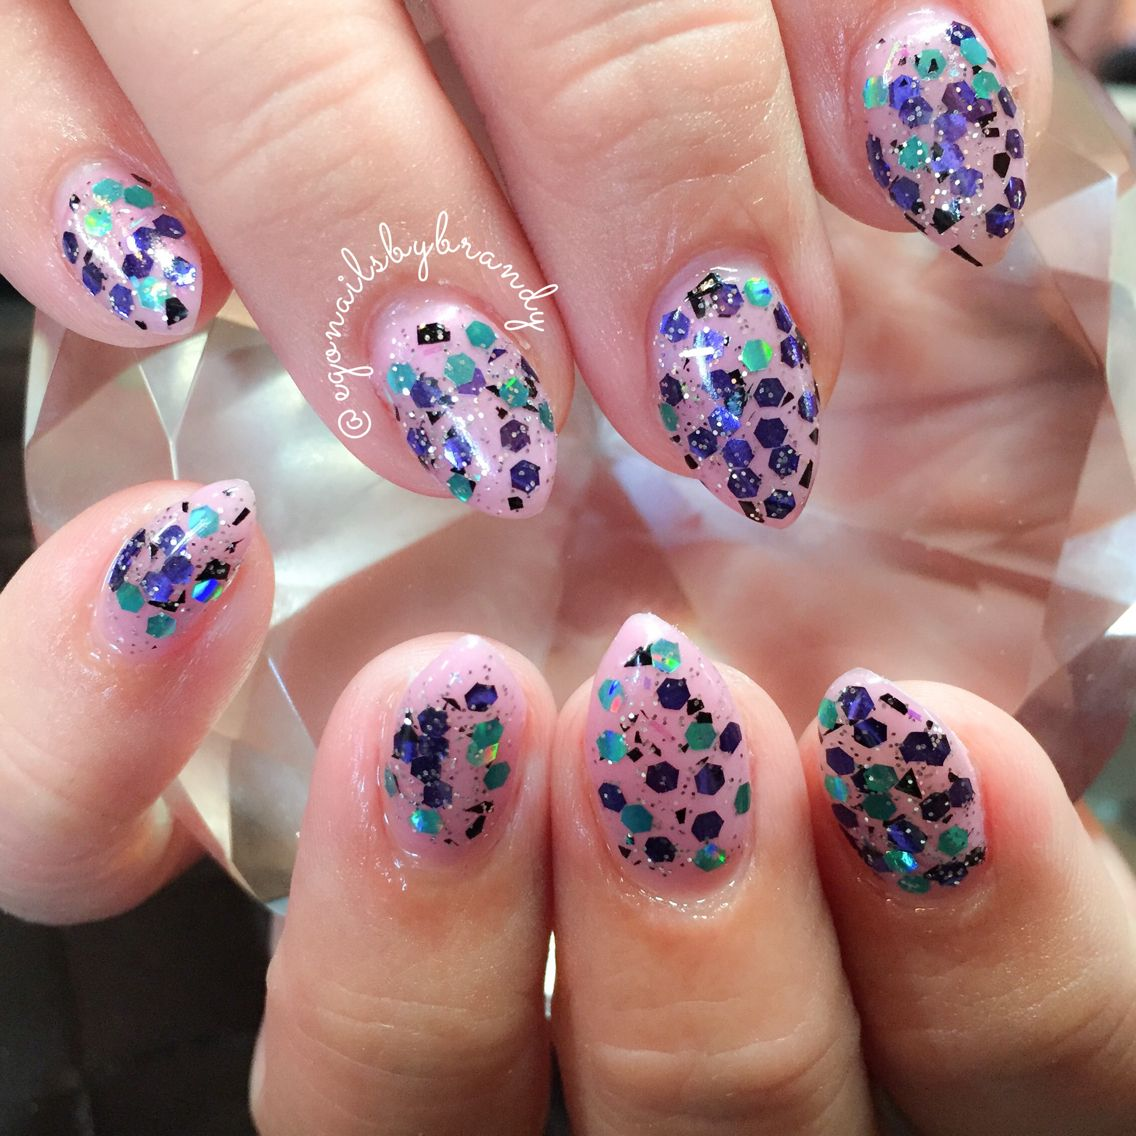 Gel nails #pointynails